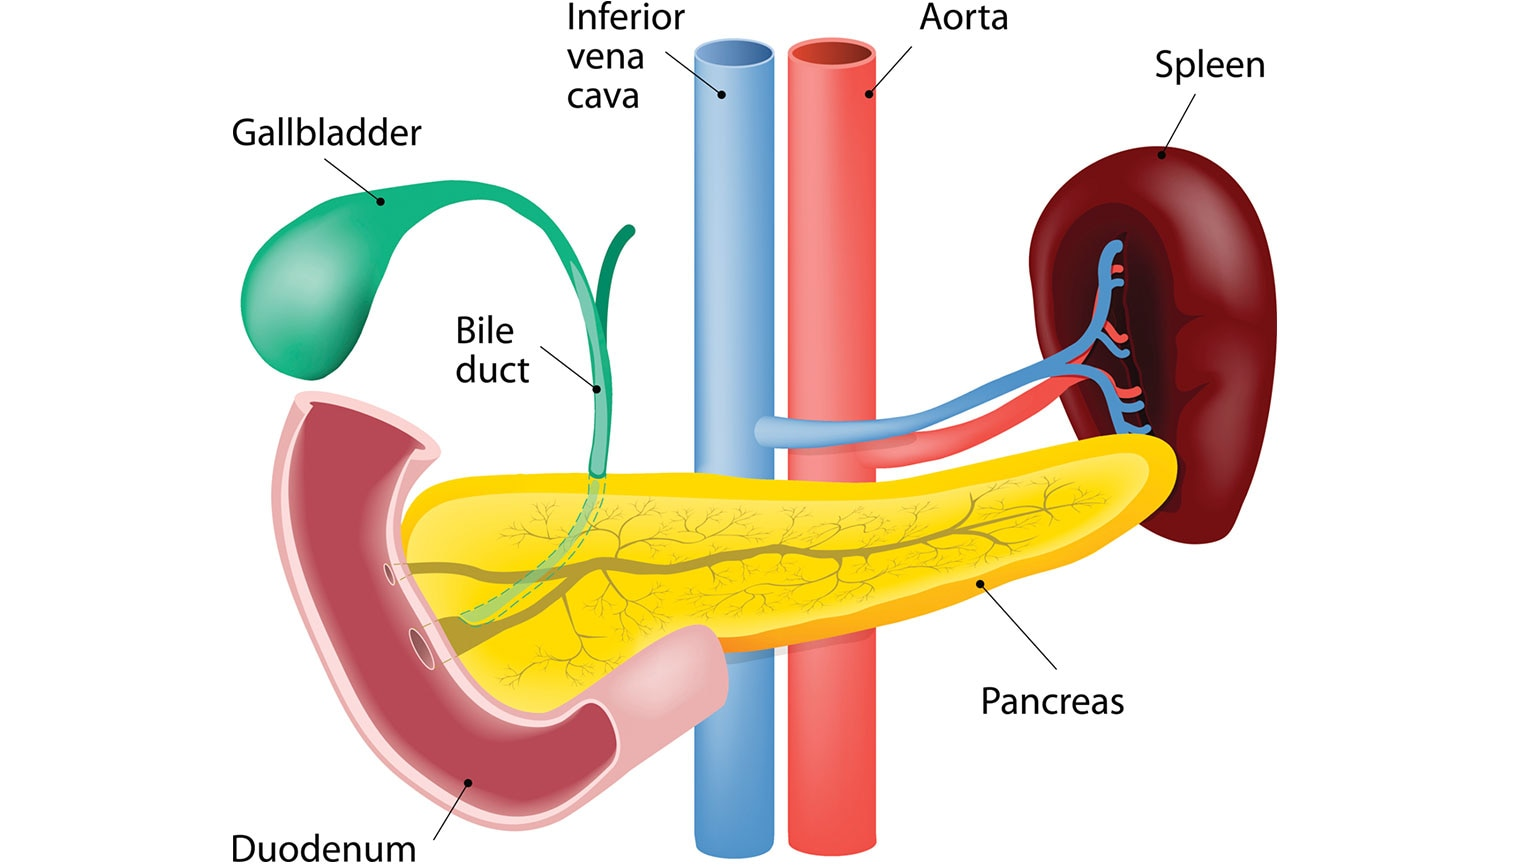 Digestive System—Anatomy of the Pancreas, Liver, and the Biliary Tree